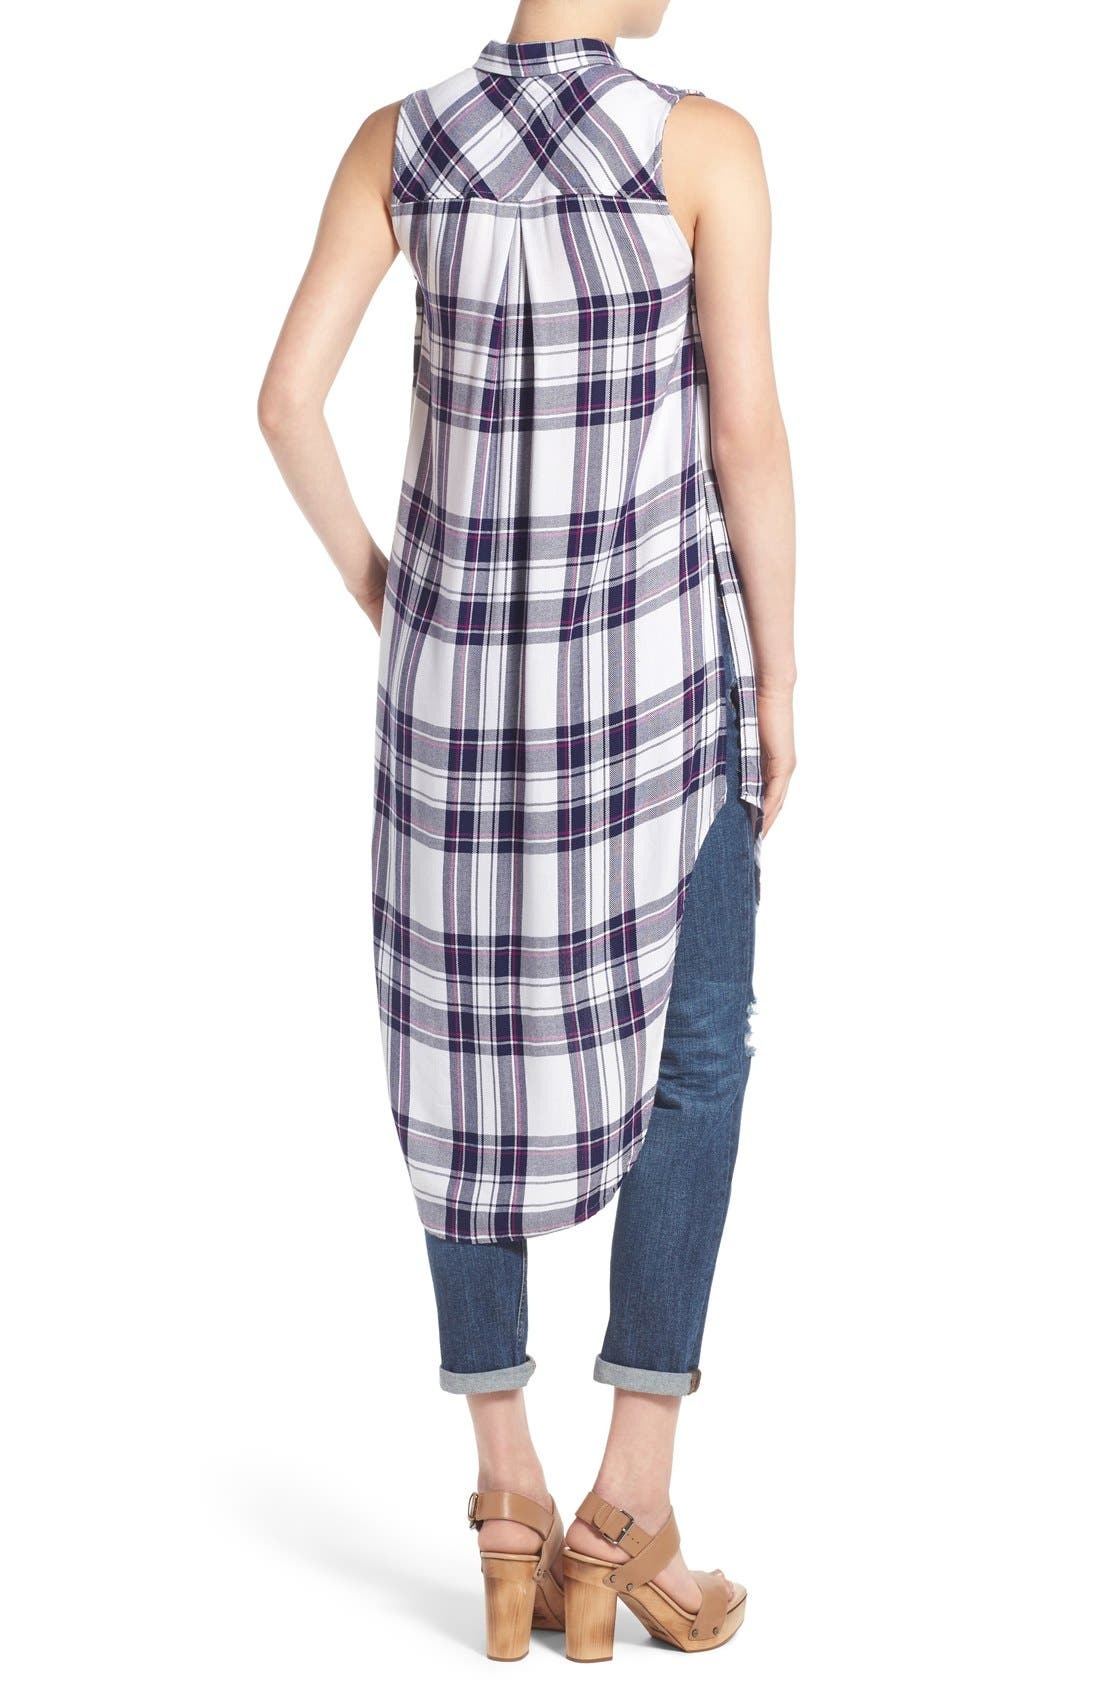 'Jordyn' Sleeveless Plaid Tunic,                             Alternate thumbnail 2, color,                             White/ Navy/ Orchid